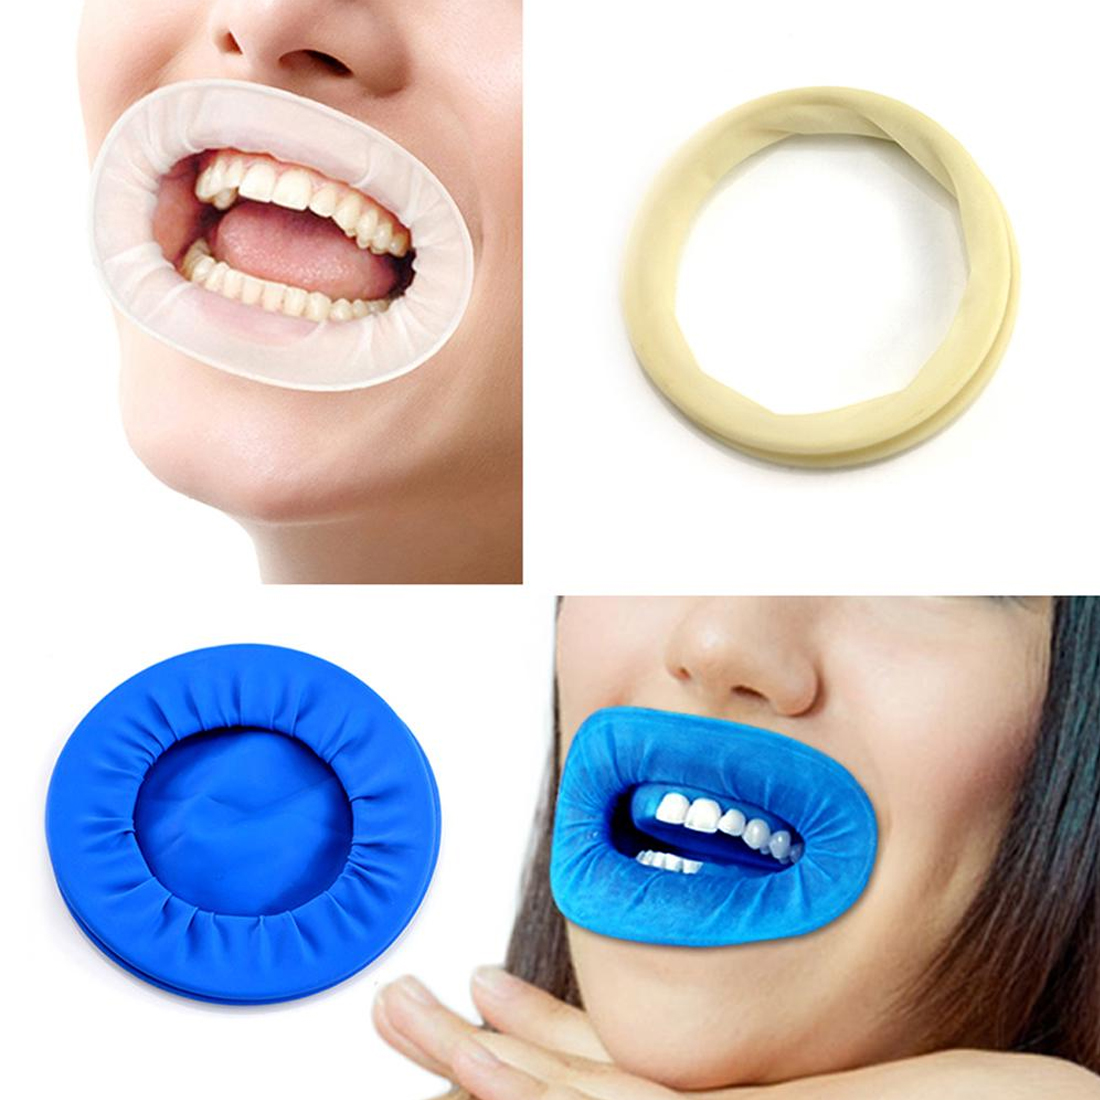 Dental Disposable Retractor Rubber Dam Rubber Sterile Oral Cheek Expanders Mouth Opener Oral